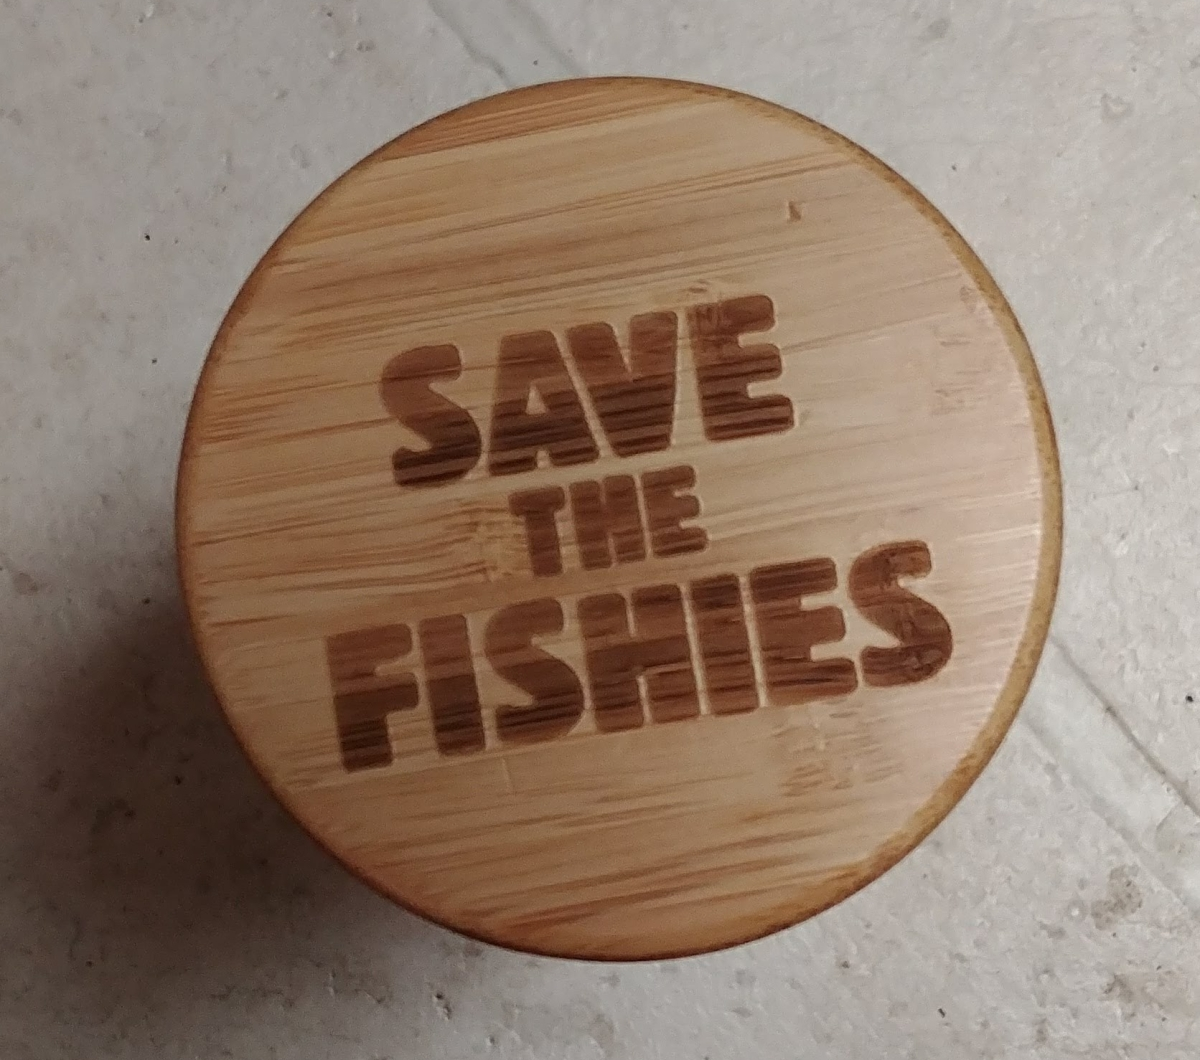 Save the Fishies